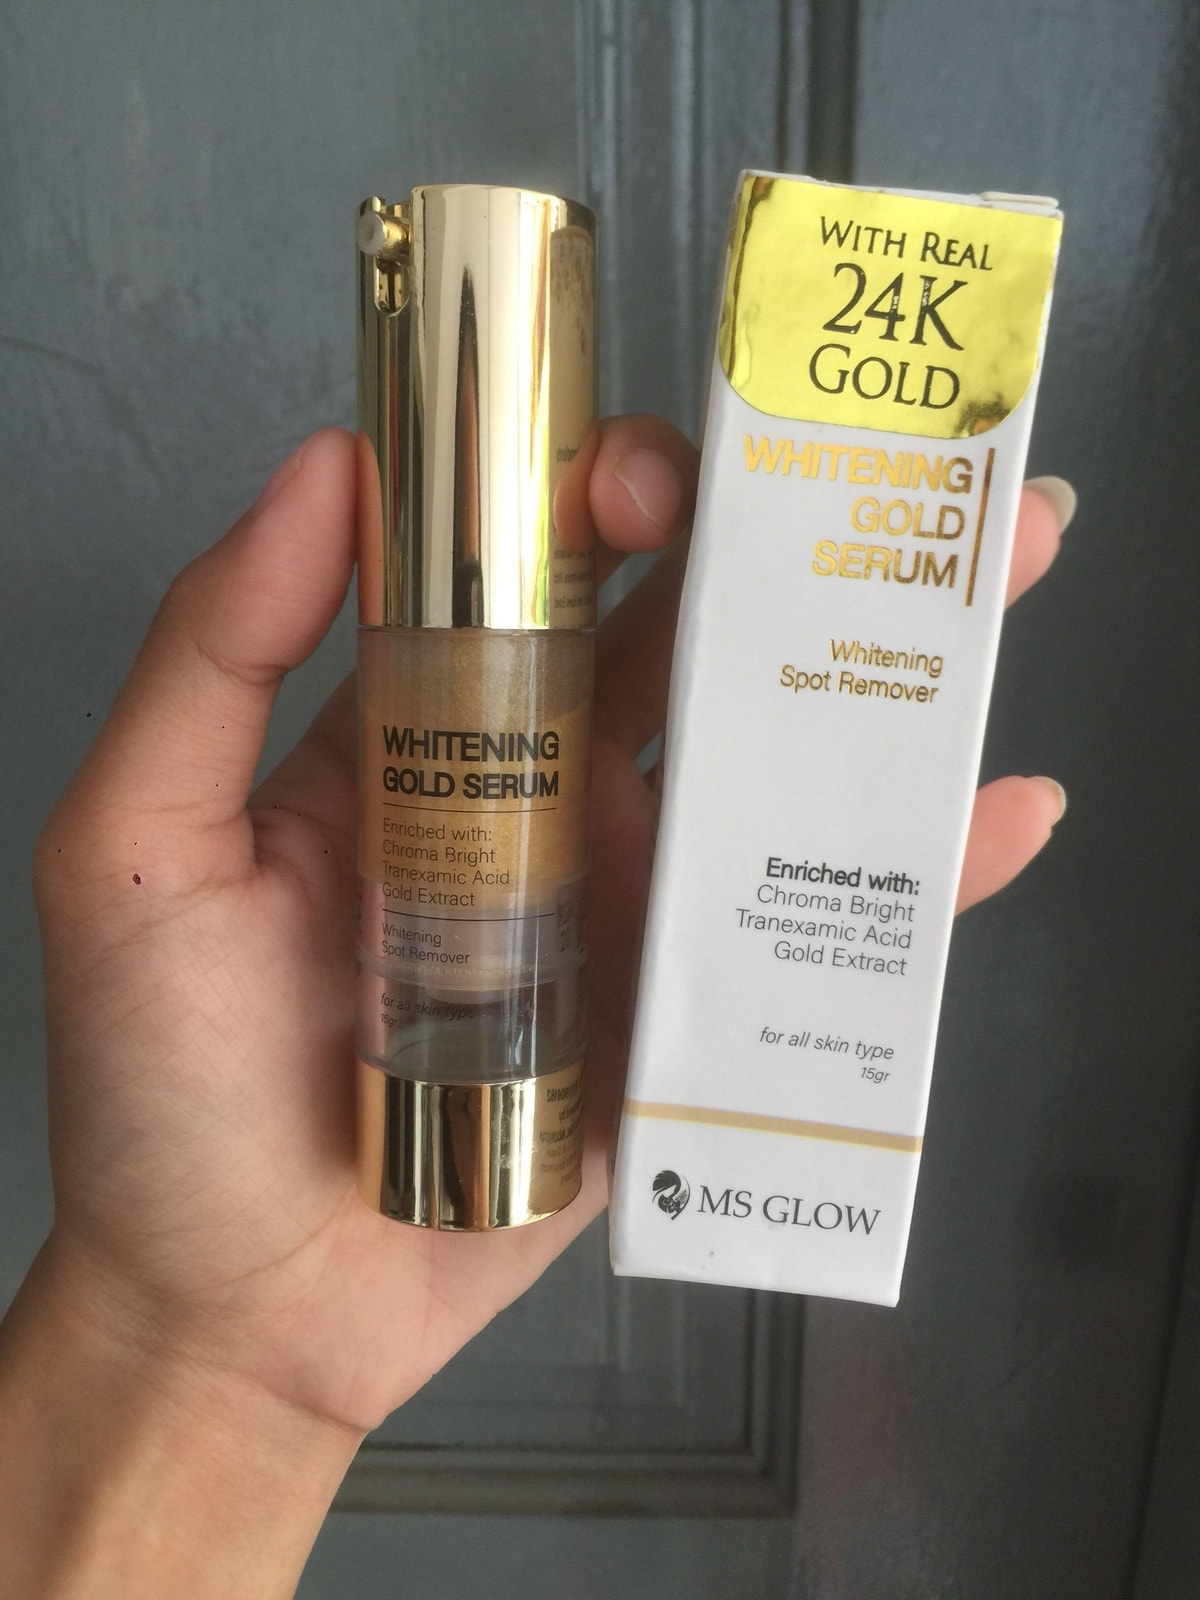 MS Glow Gold Serum